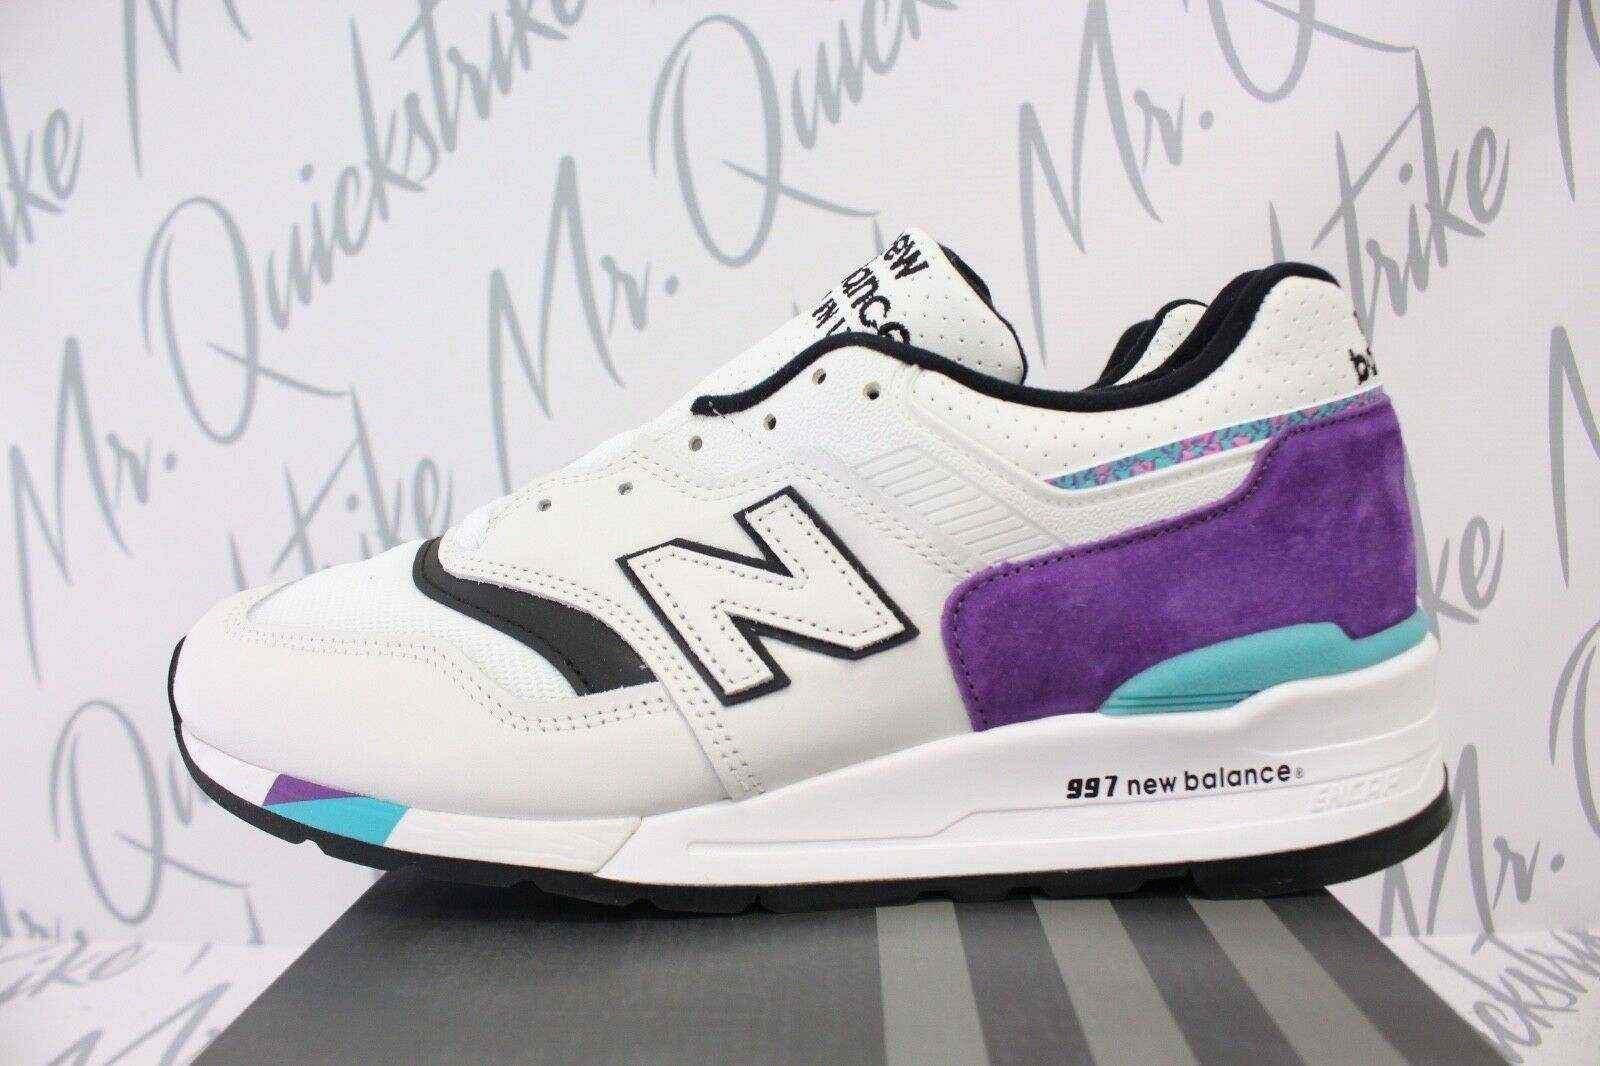 NEW BALANCE 997 MADE IN THE USA SZ 11.5 WHITE PURPLE BLACK TEAL M997WEA